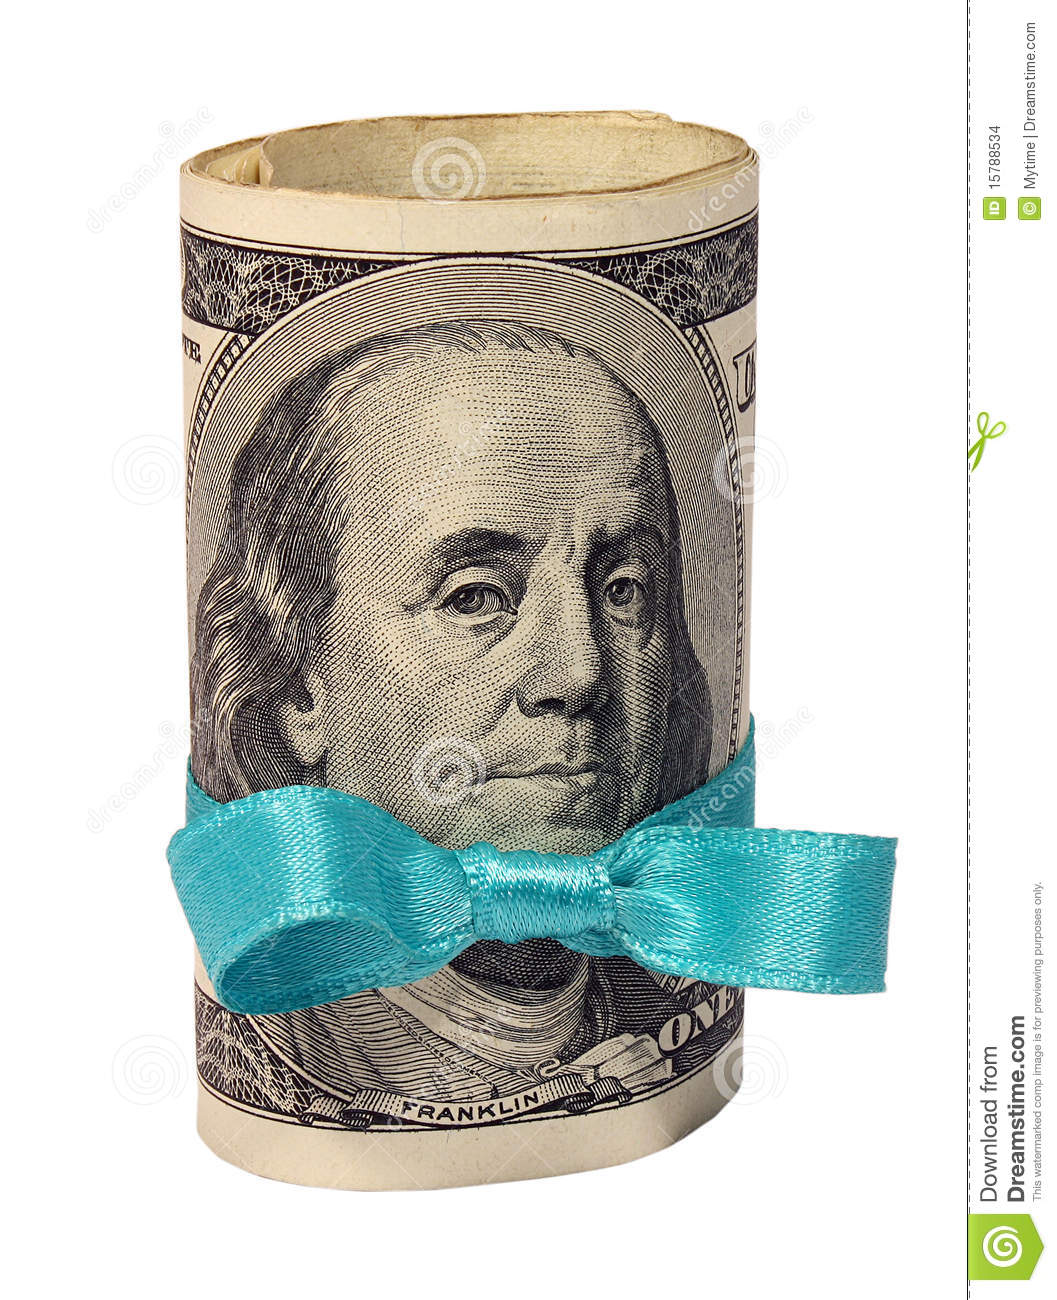 Present of roll of dollars with blue ribbon - present-roll-dollars-blue-ribbon-15788534